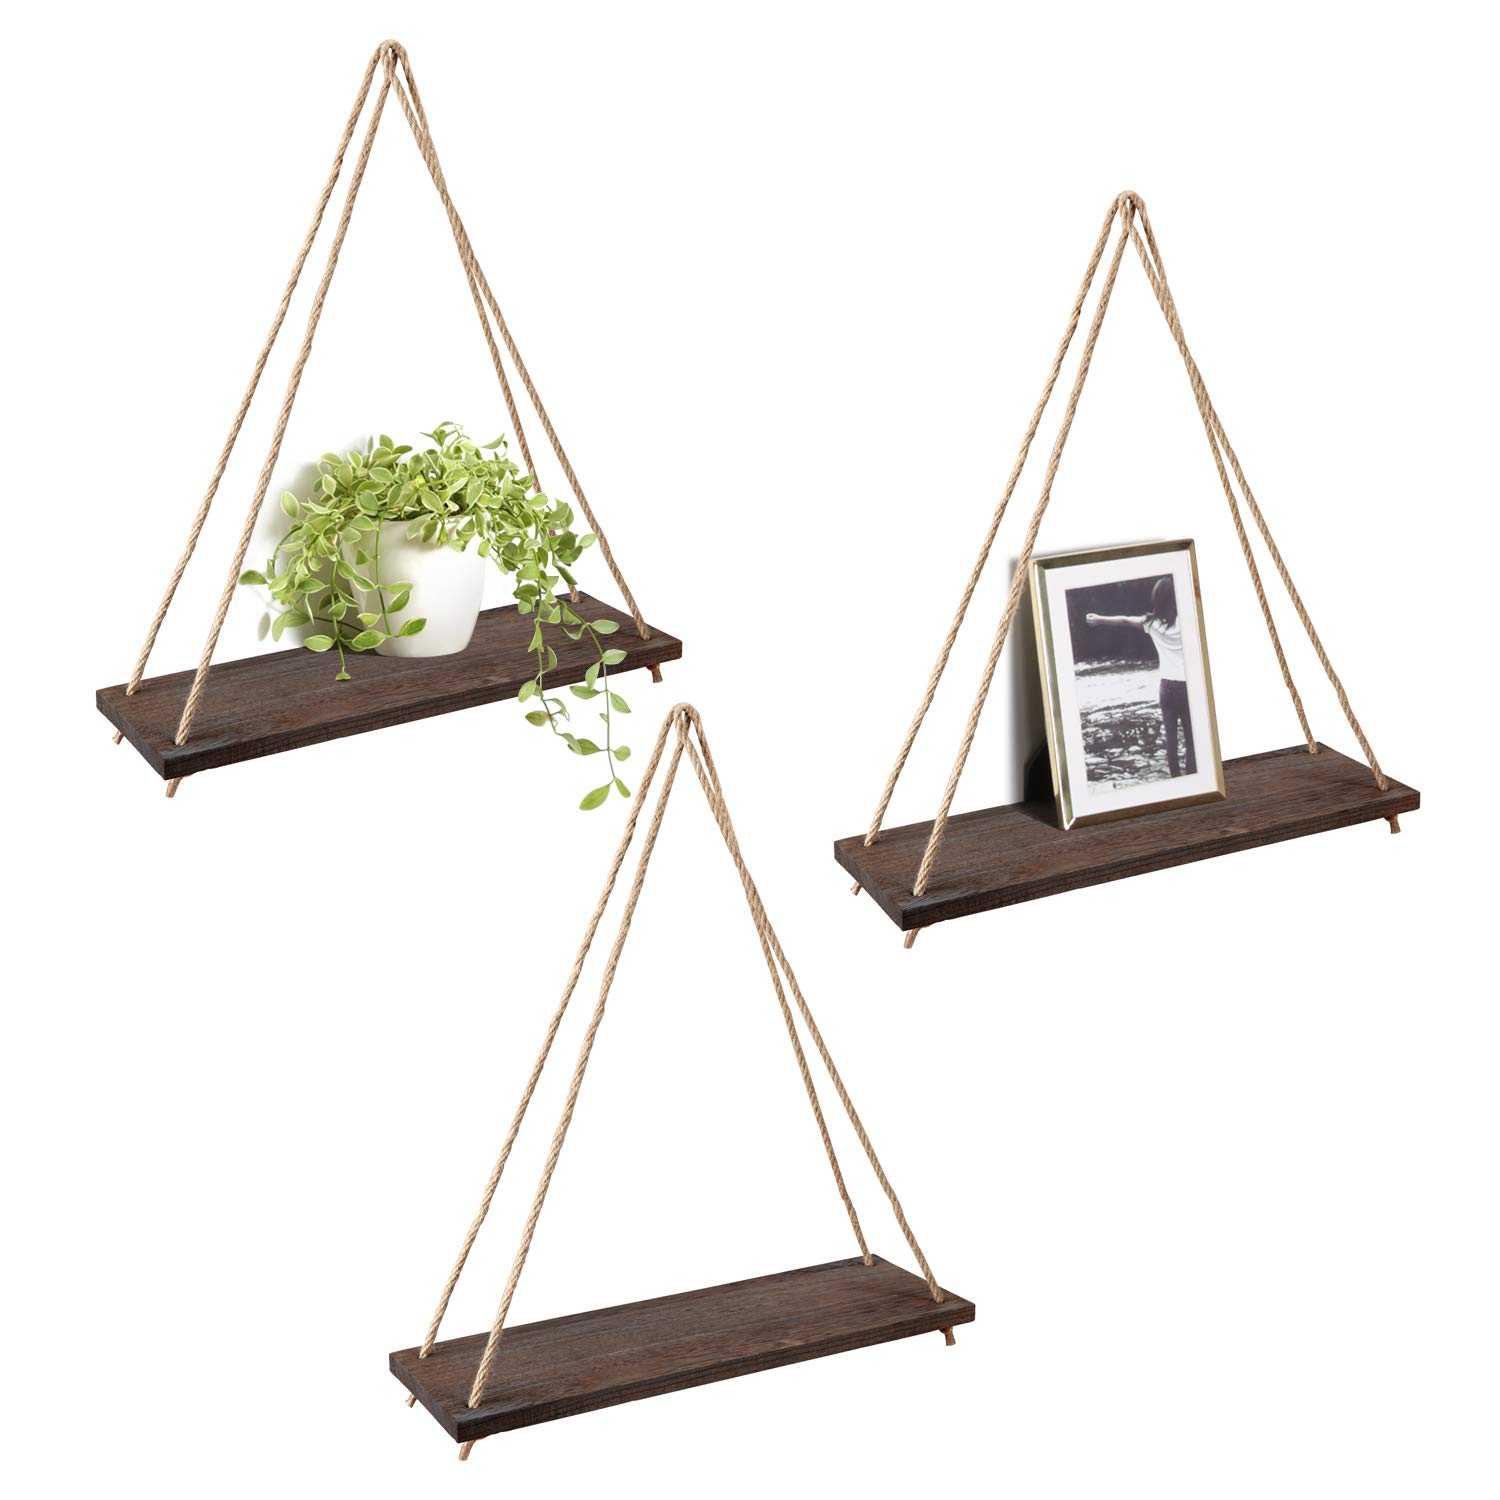 Mkono Wood Wall Floating Shelf Rustic Hanging Swing Rope Shelves, Set of 3 Wall Display Shelves Home Organizer Boho Decor Shelves for Living Room Bedroom Bathroom Kitchen